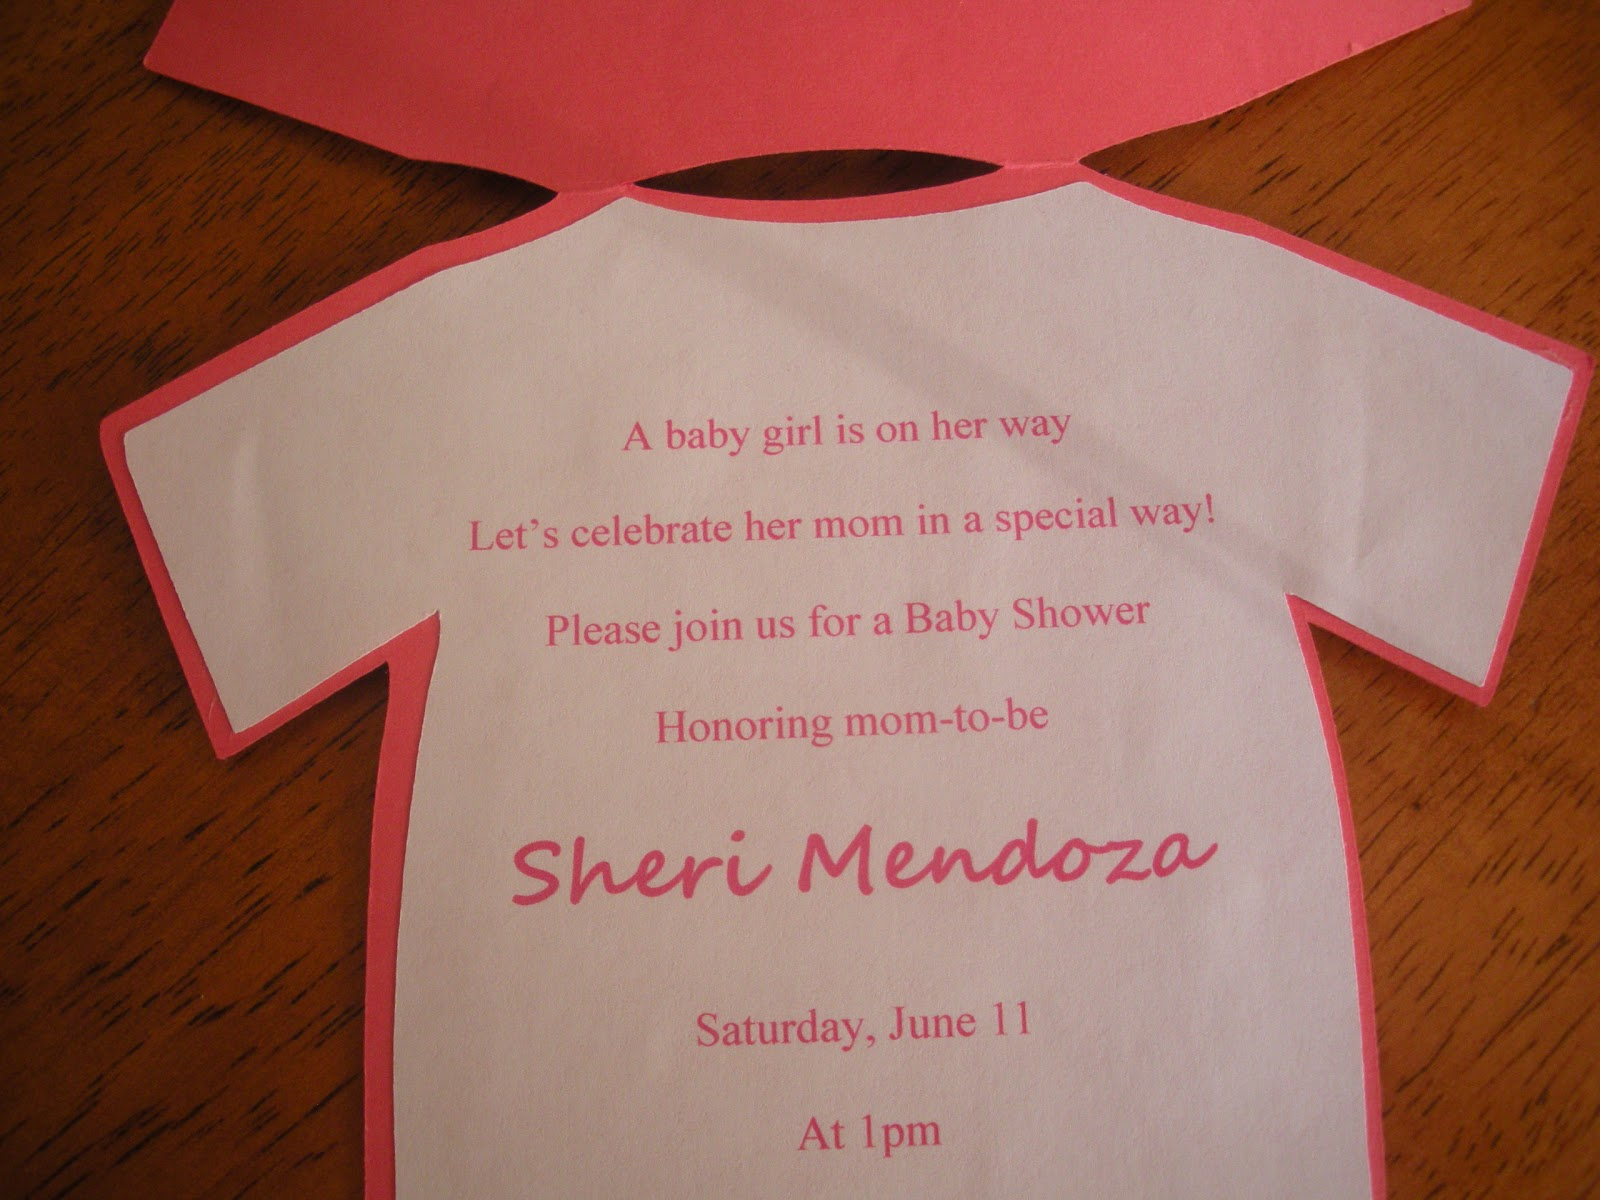 Jenns paper crafts baby shower invitations girl jenn posted by jenns paper crafts filmwisefo Choice Image